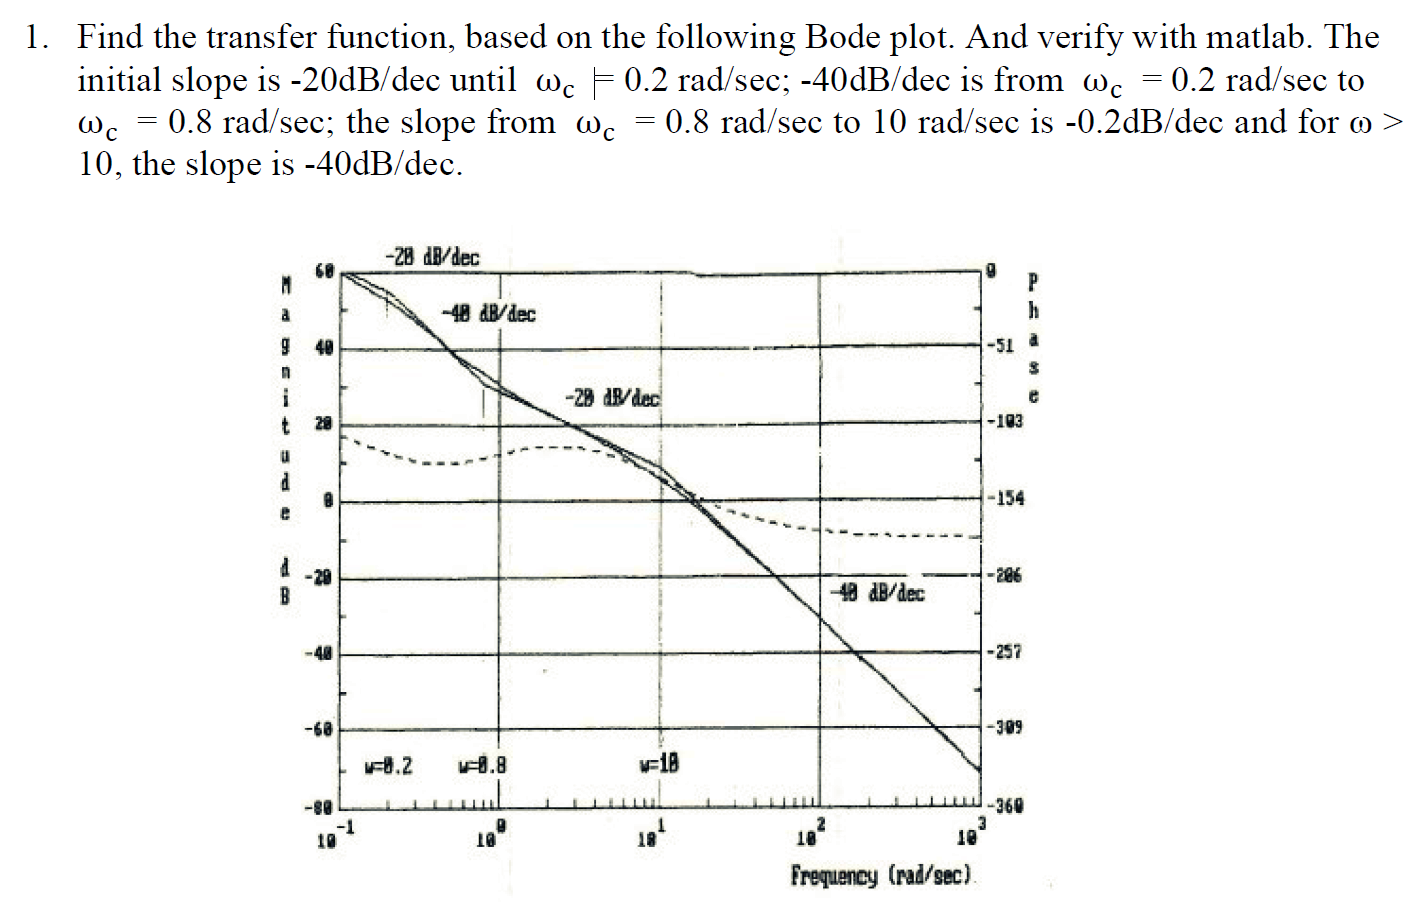 how to get transfer function from bode plot